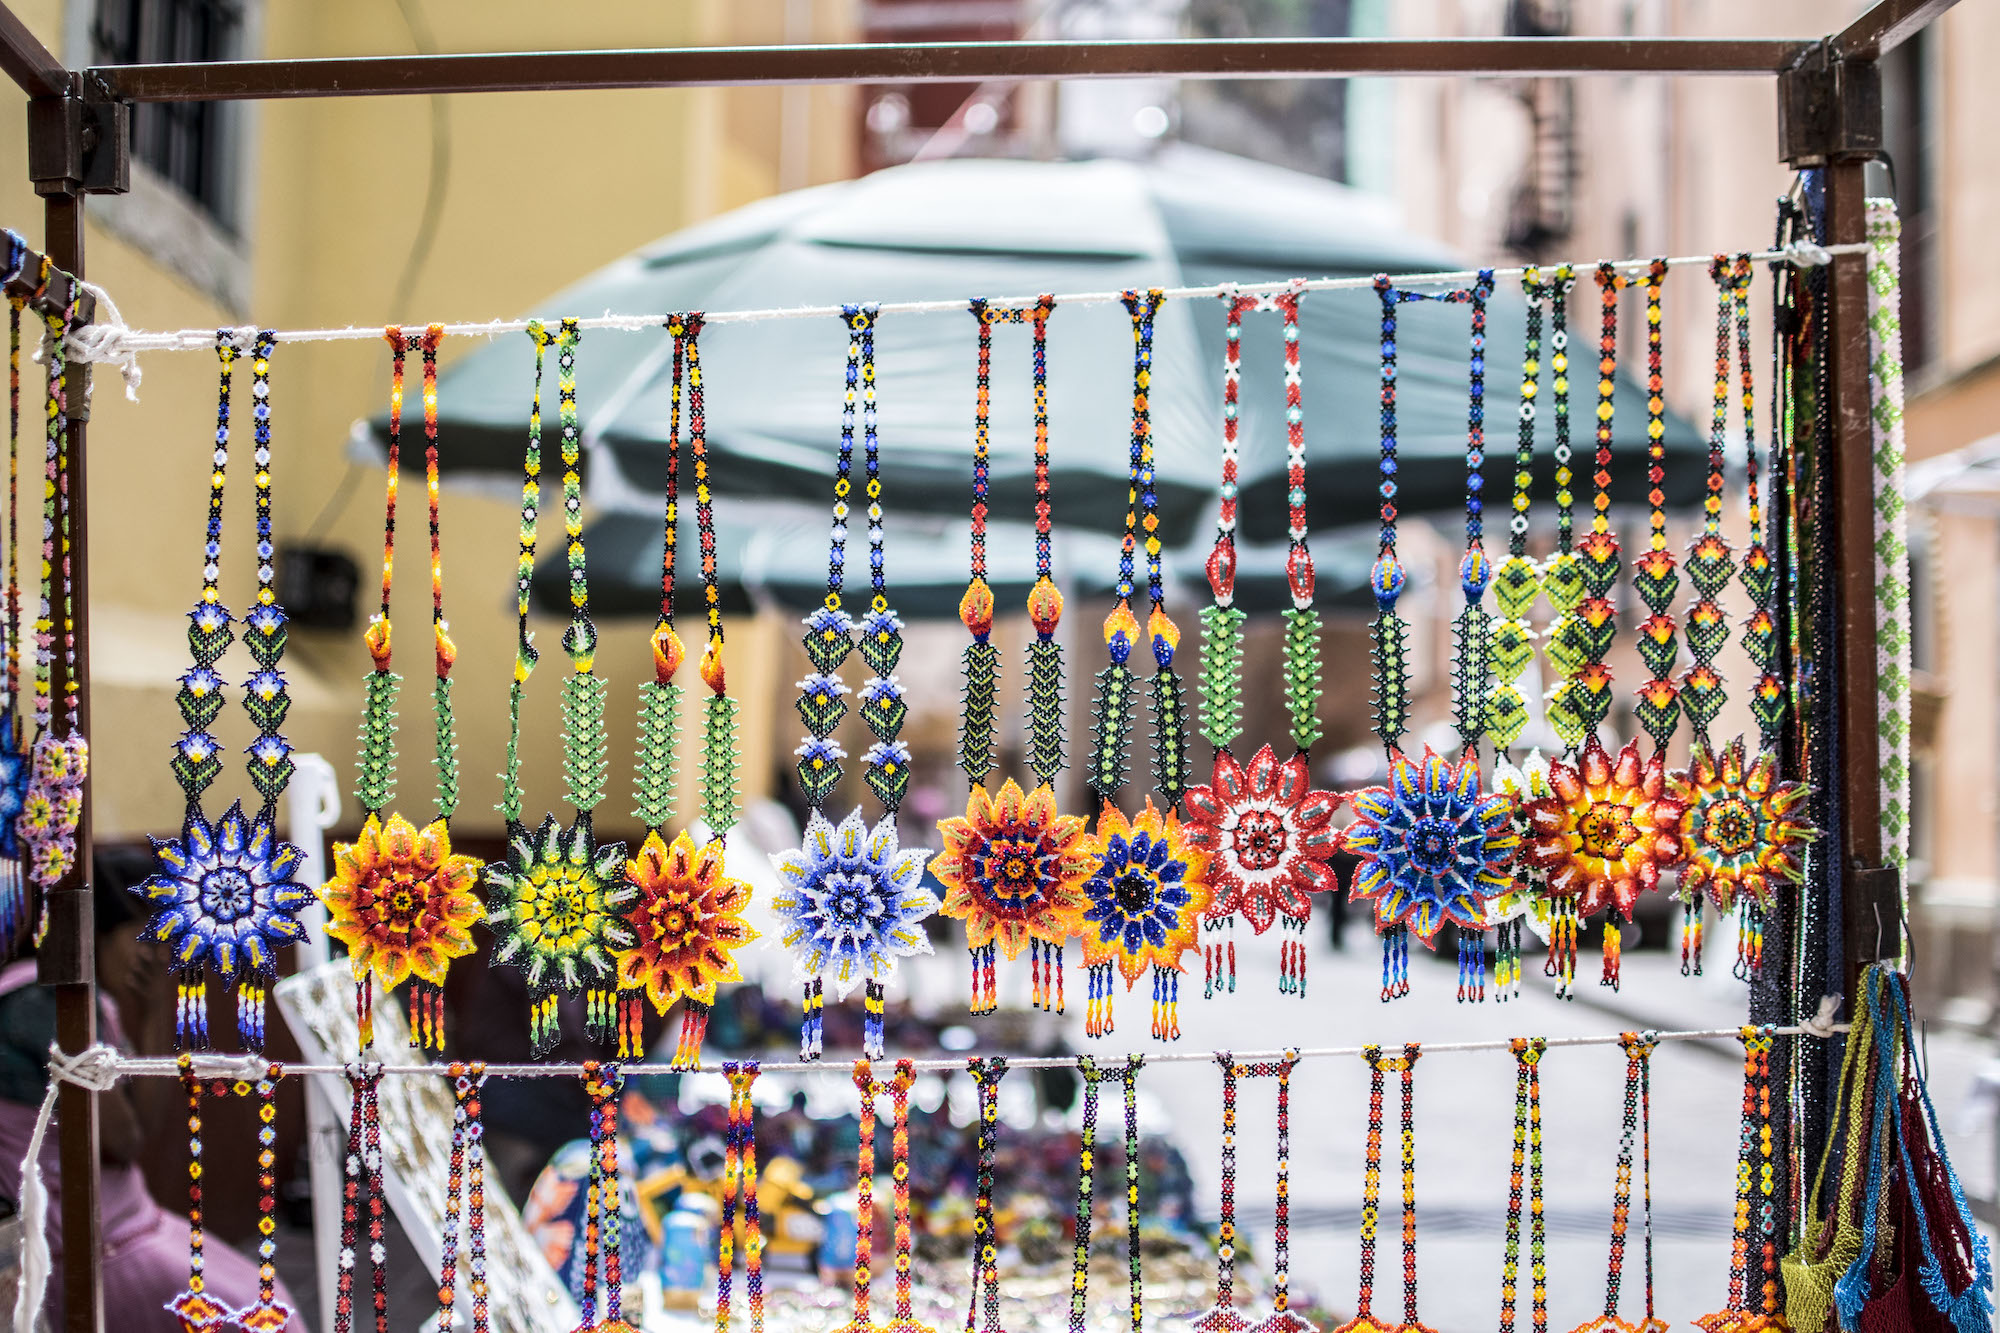 Souvenirs Colliers Perles Mexicains | Guanajuato LovaLinda Photography